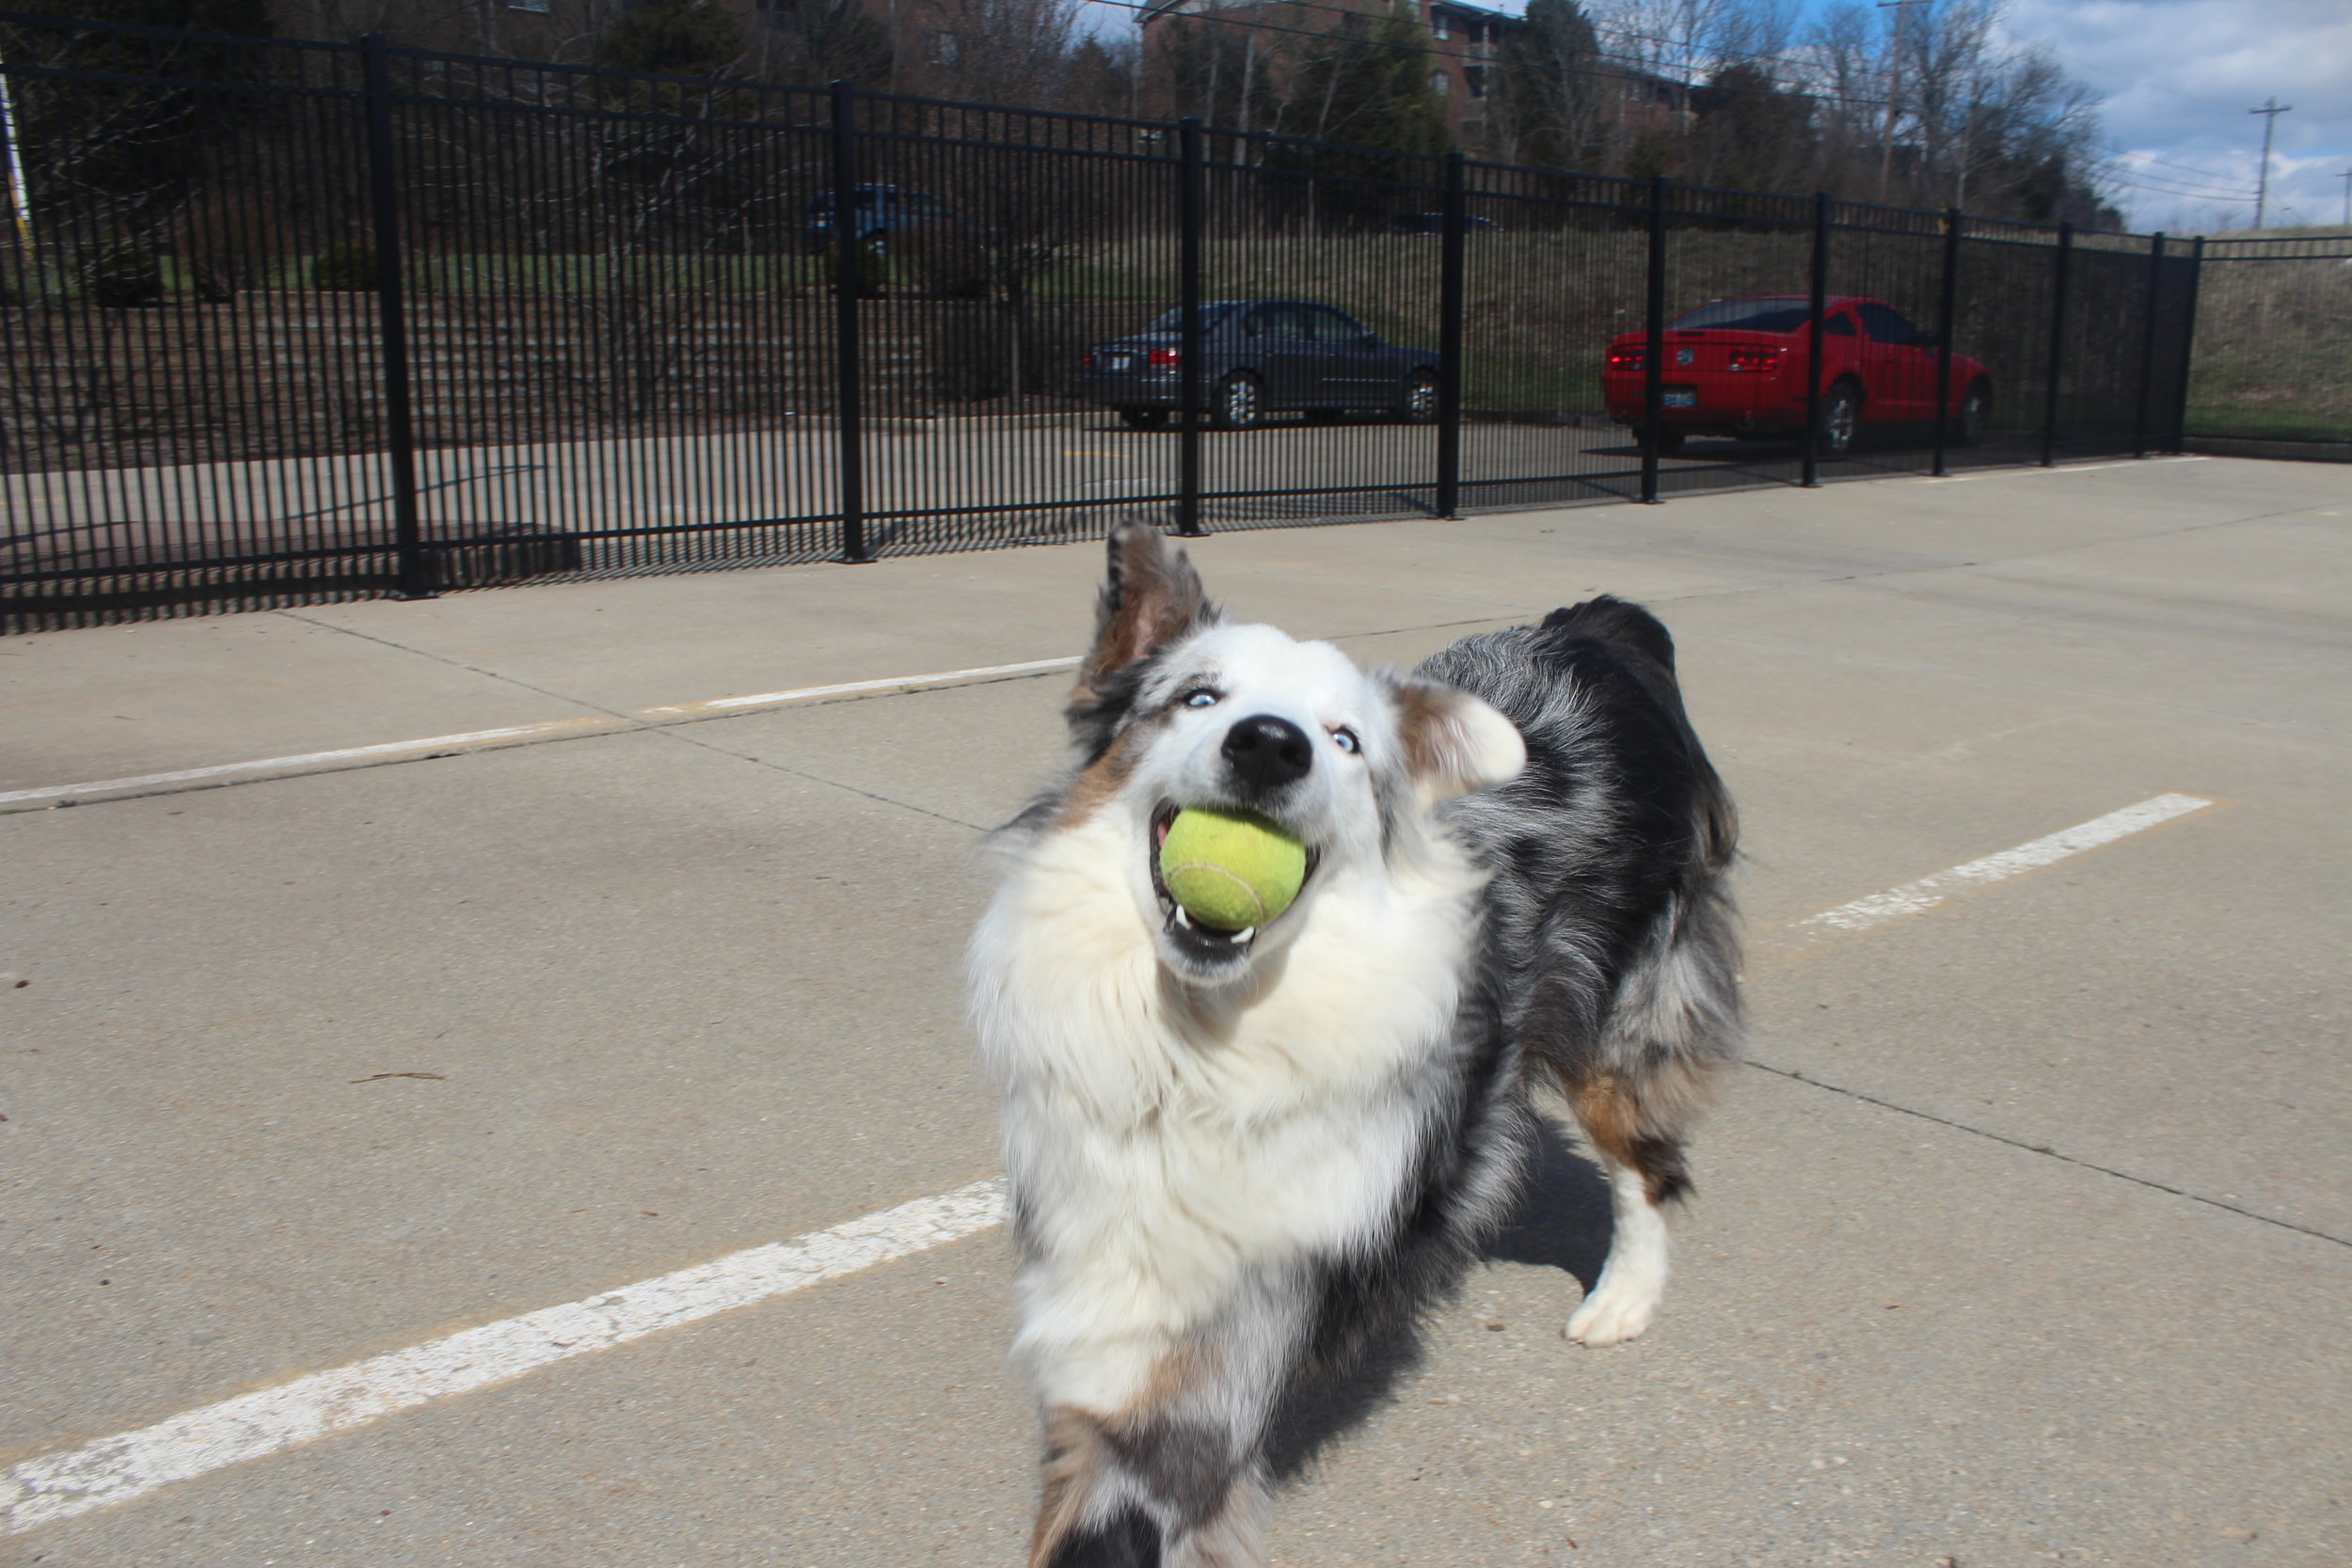 Arnie the dog loves tennis balls. He's definitely in the top 5 of boarding and daycare dogs who take tennis balls seriously. In order just to keep up with Arnie you mostly need to have at least played in the Minor Leagues. You're arm will certainly go numb after awhile.